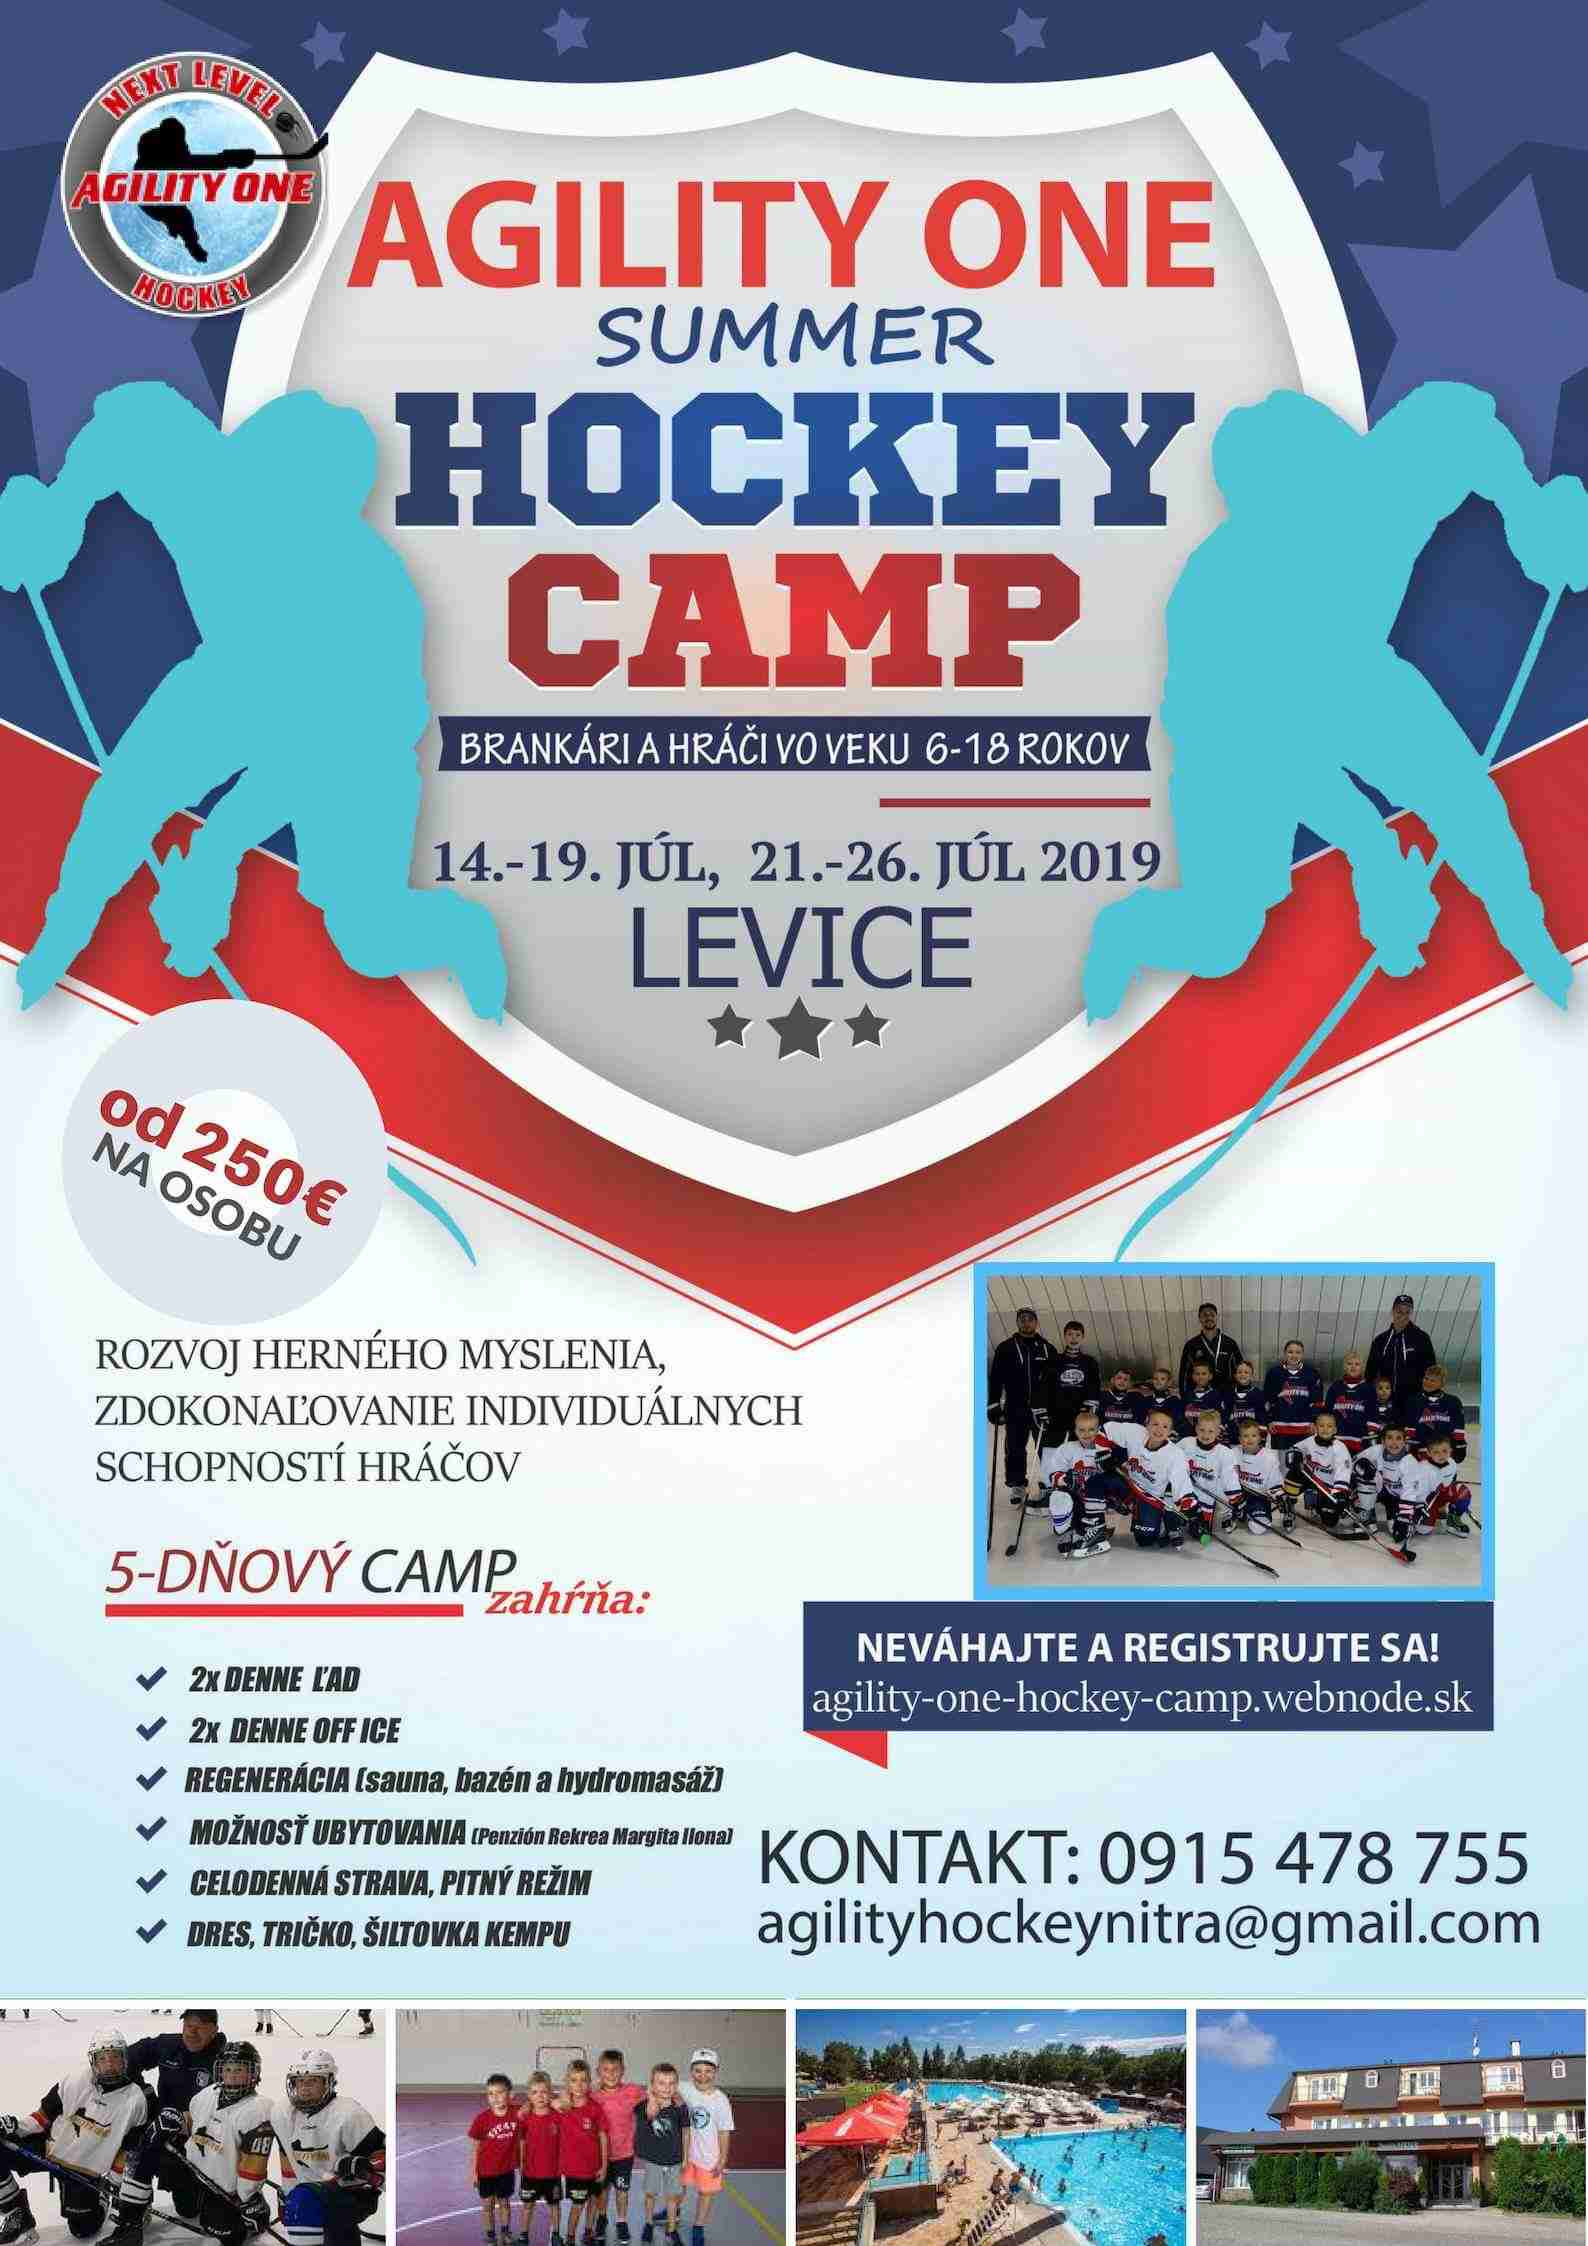 Agility one summer hockey camp